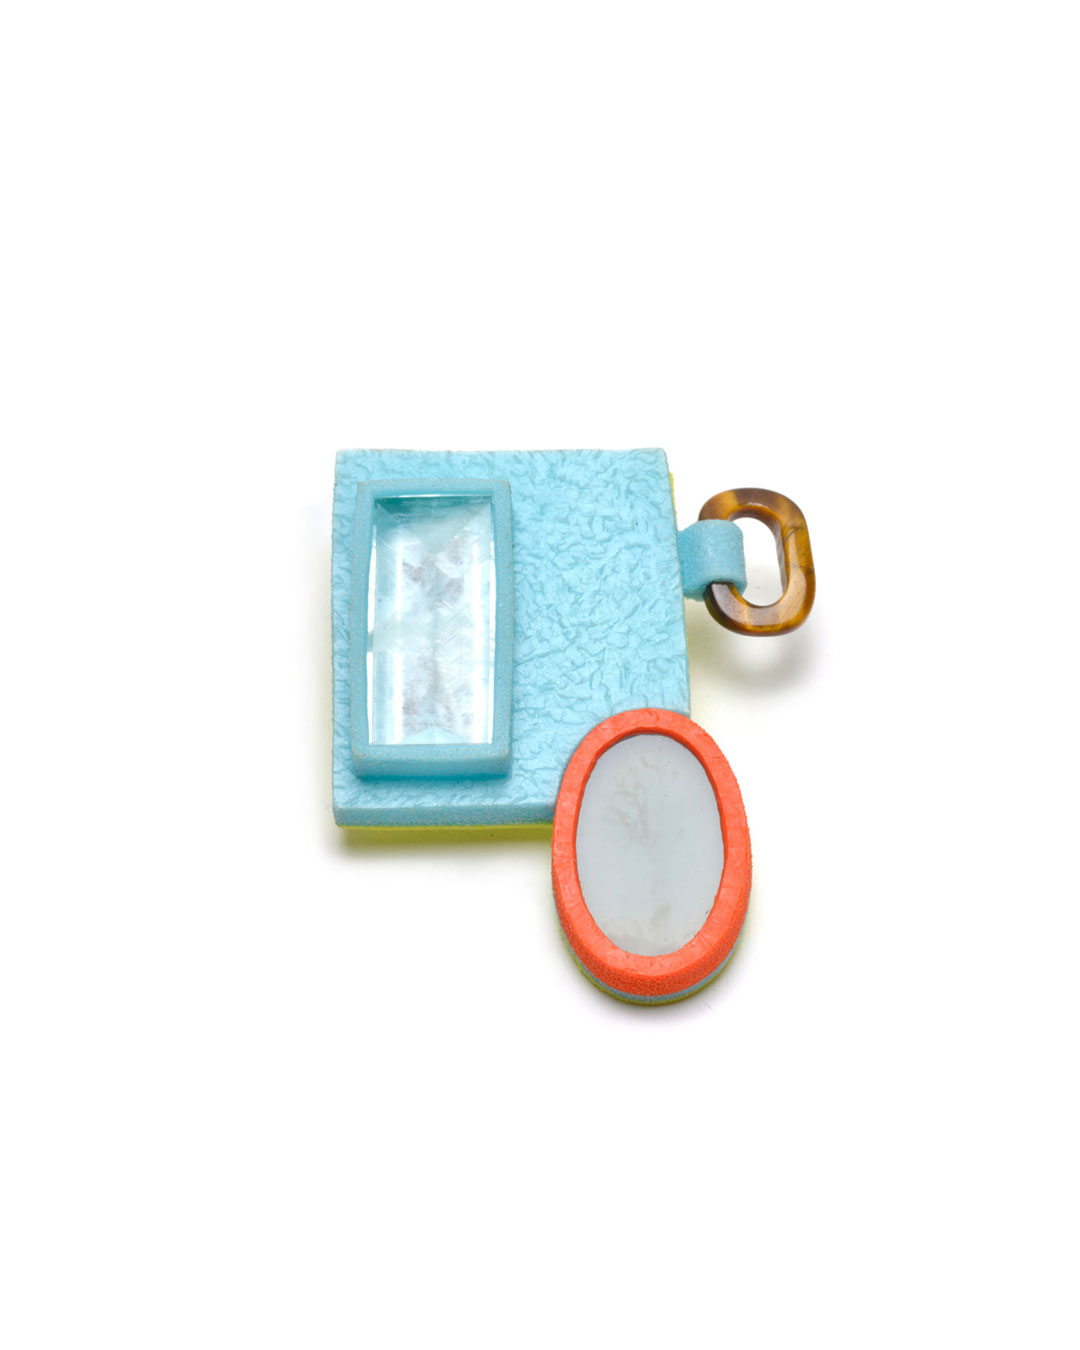 Ute Eitzenhöfer, Greetings from Idar-Oberstein 20, 2007, brooch; aquamarine, tiger's eye, agate, plastic (from packaging), 68 x 53 x 20 mm, €3000